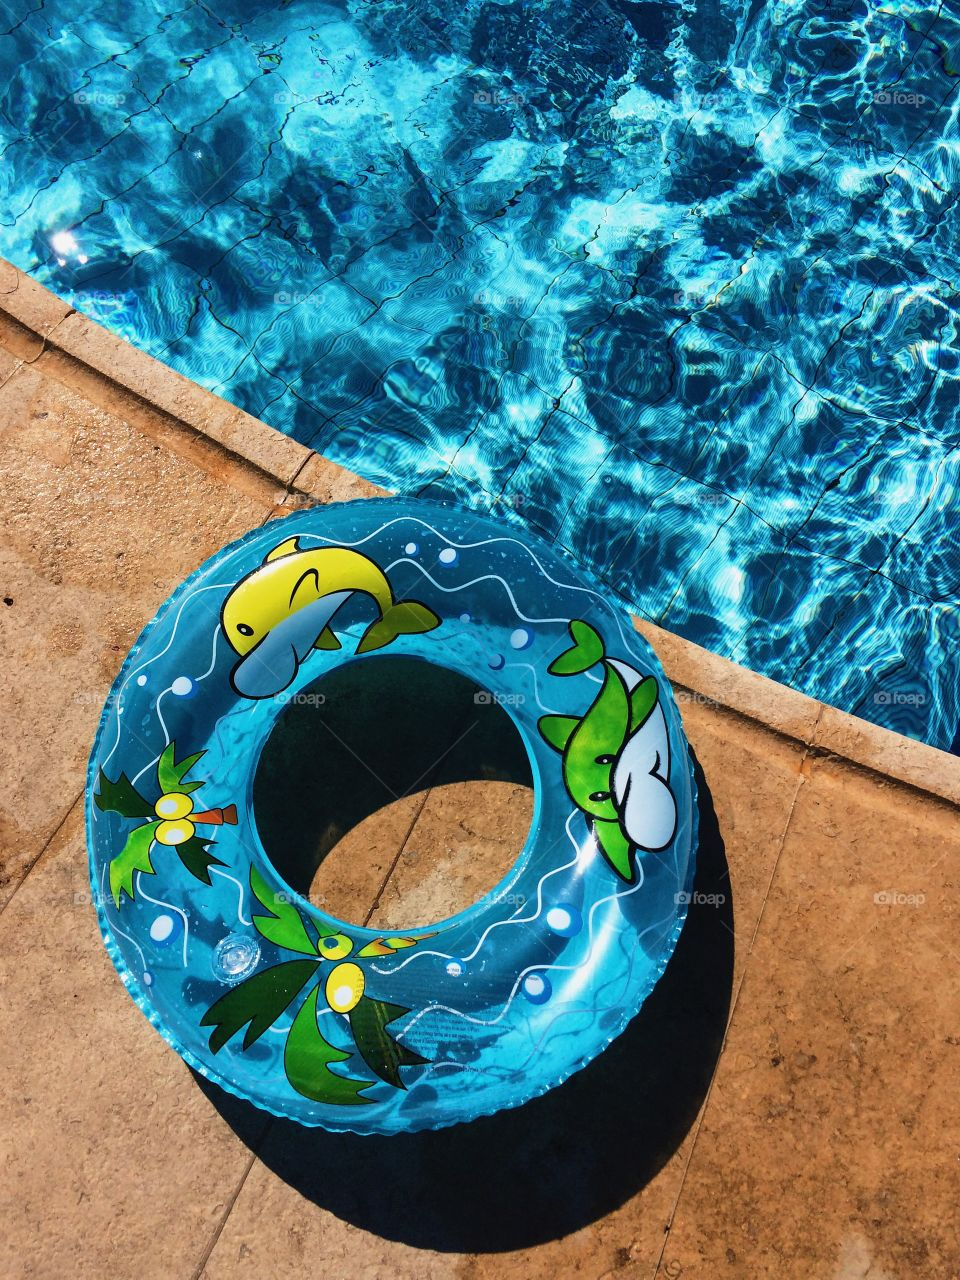 Blue inflatable ring near swimming pool